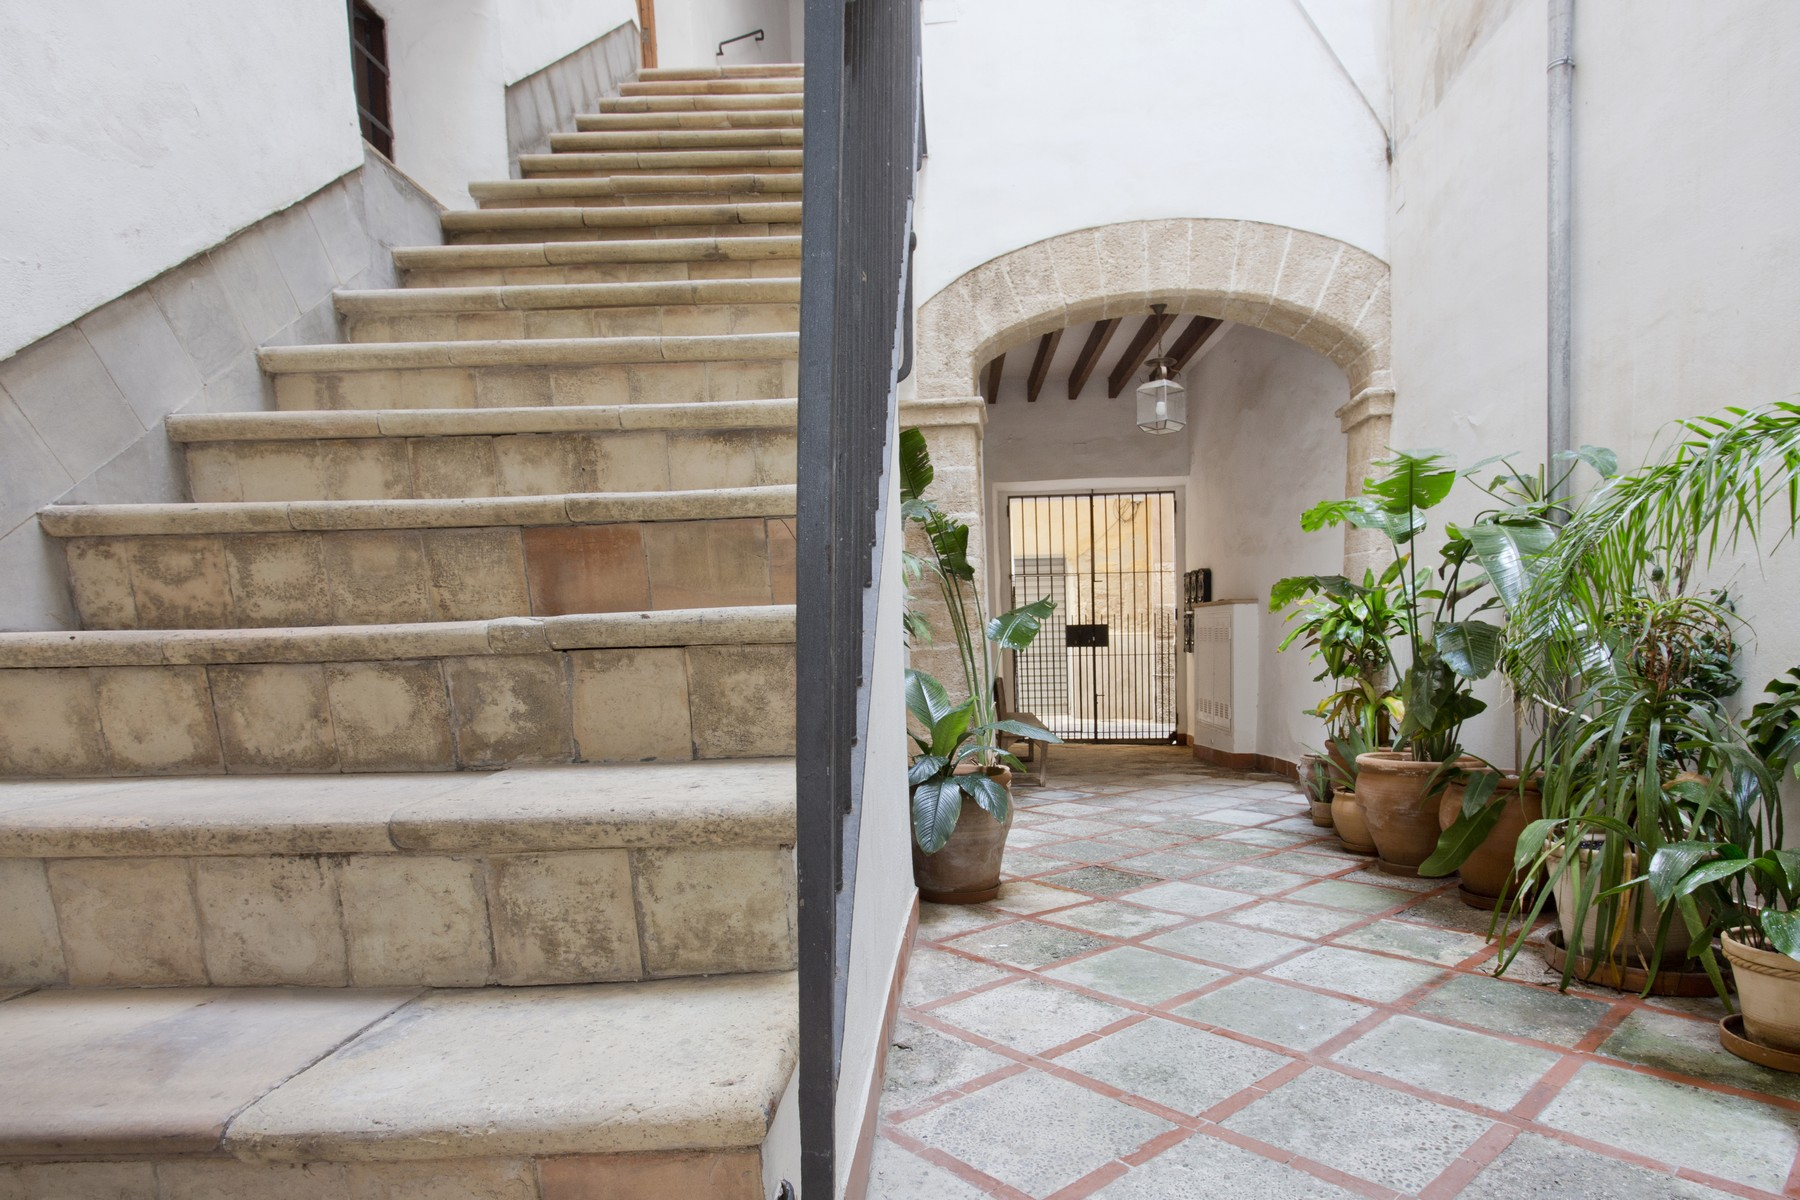 Single Family Home for Sale at Apartment in the Old Town of Palma Palma Center, Mallorca, 07012 Spain